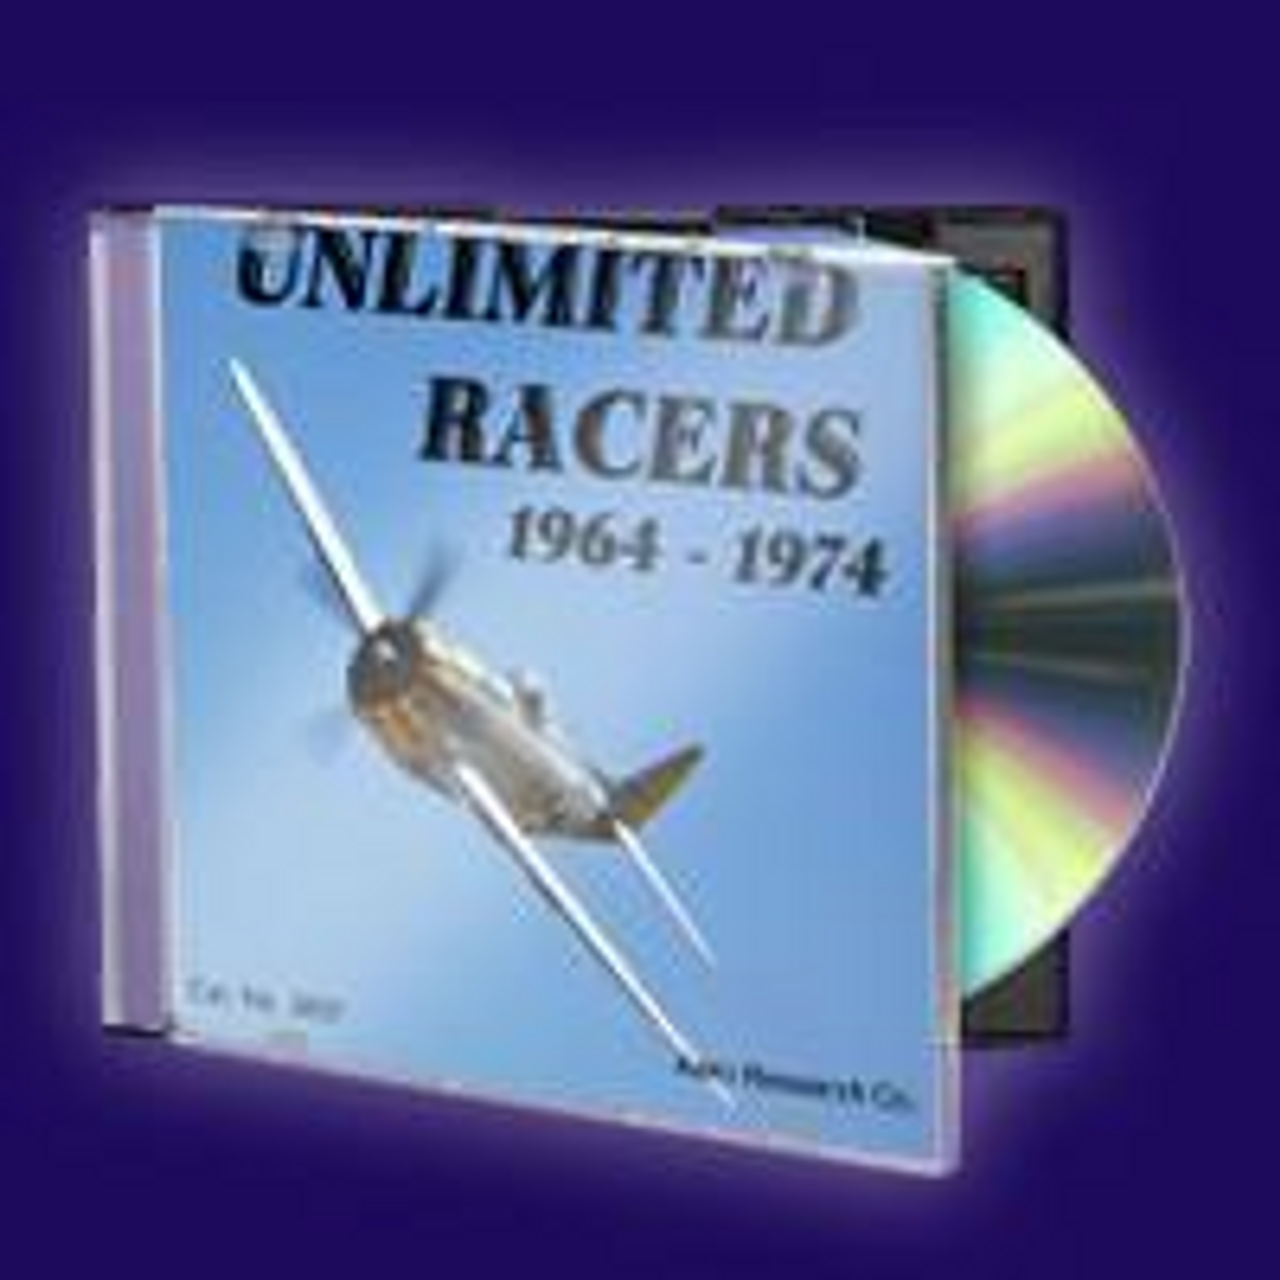 Aero Research Photo CD Unlimited Racers 1964-1974